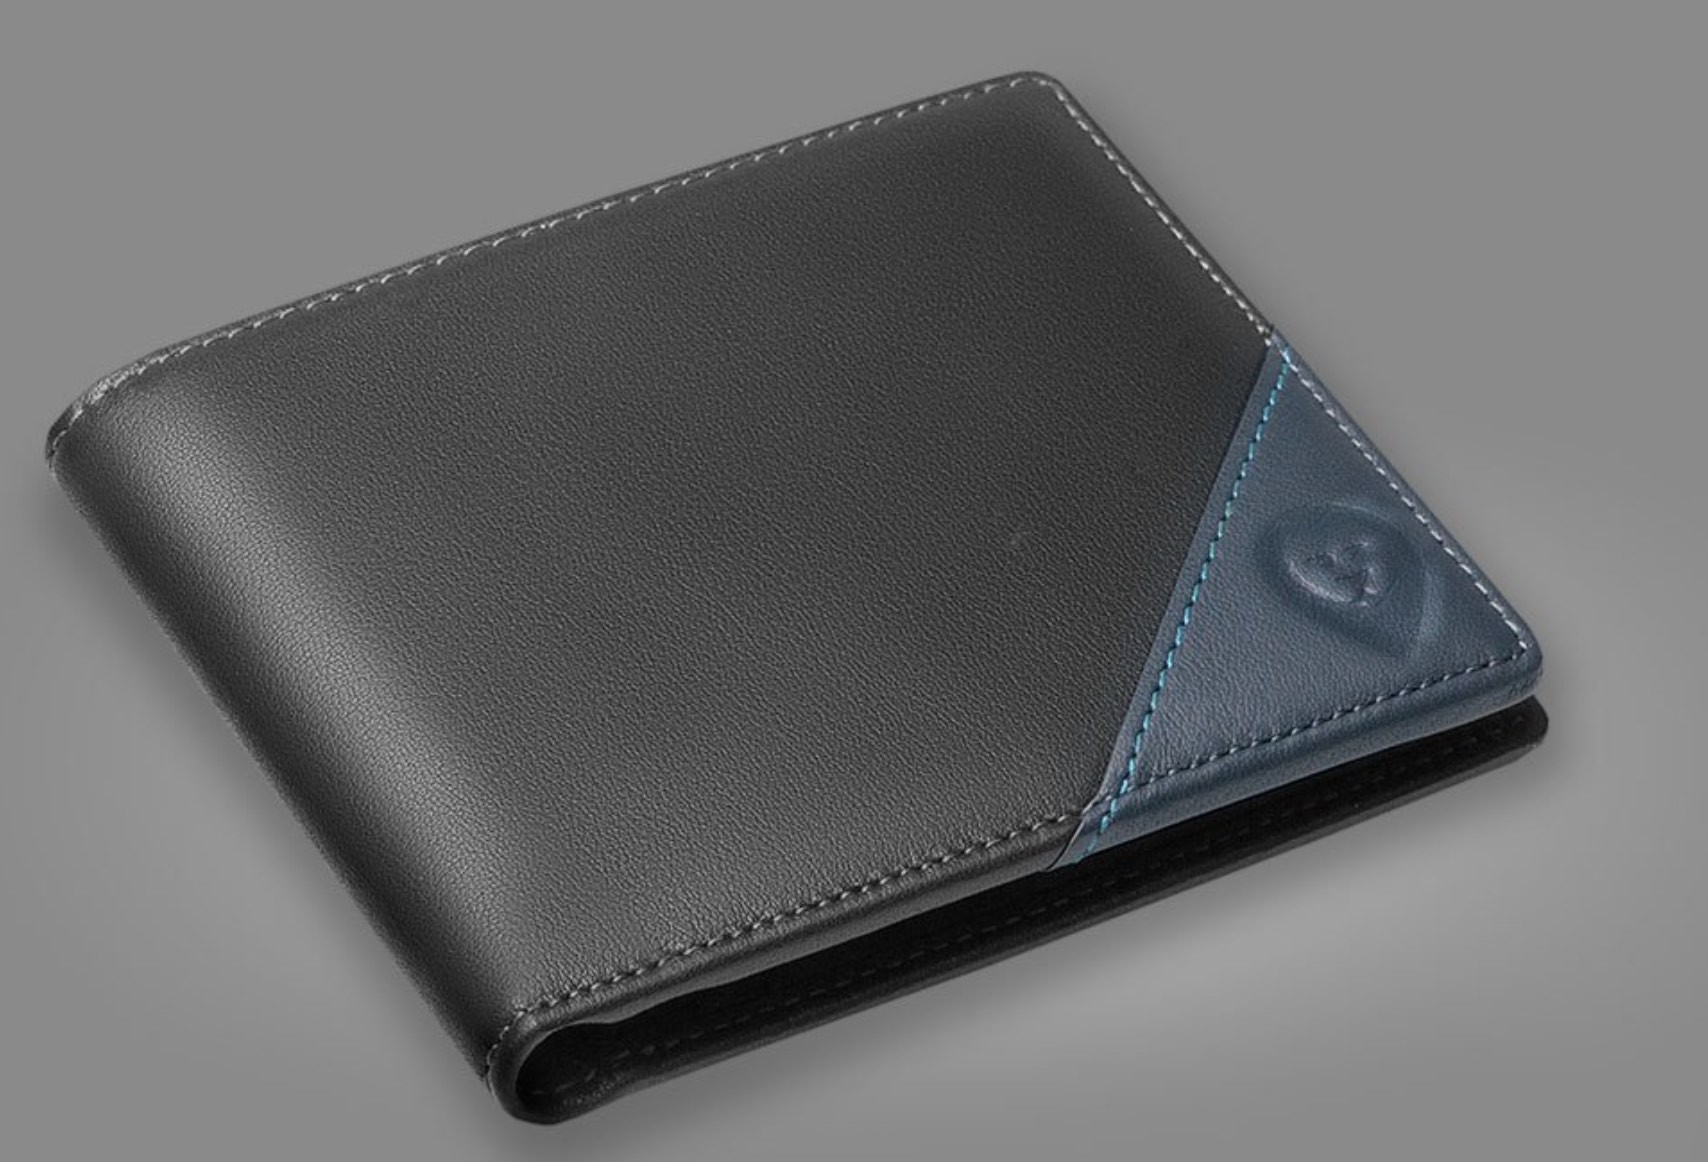 Wallet 2.0 smart wallet. Smart wallets with GPS tracking.